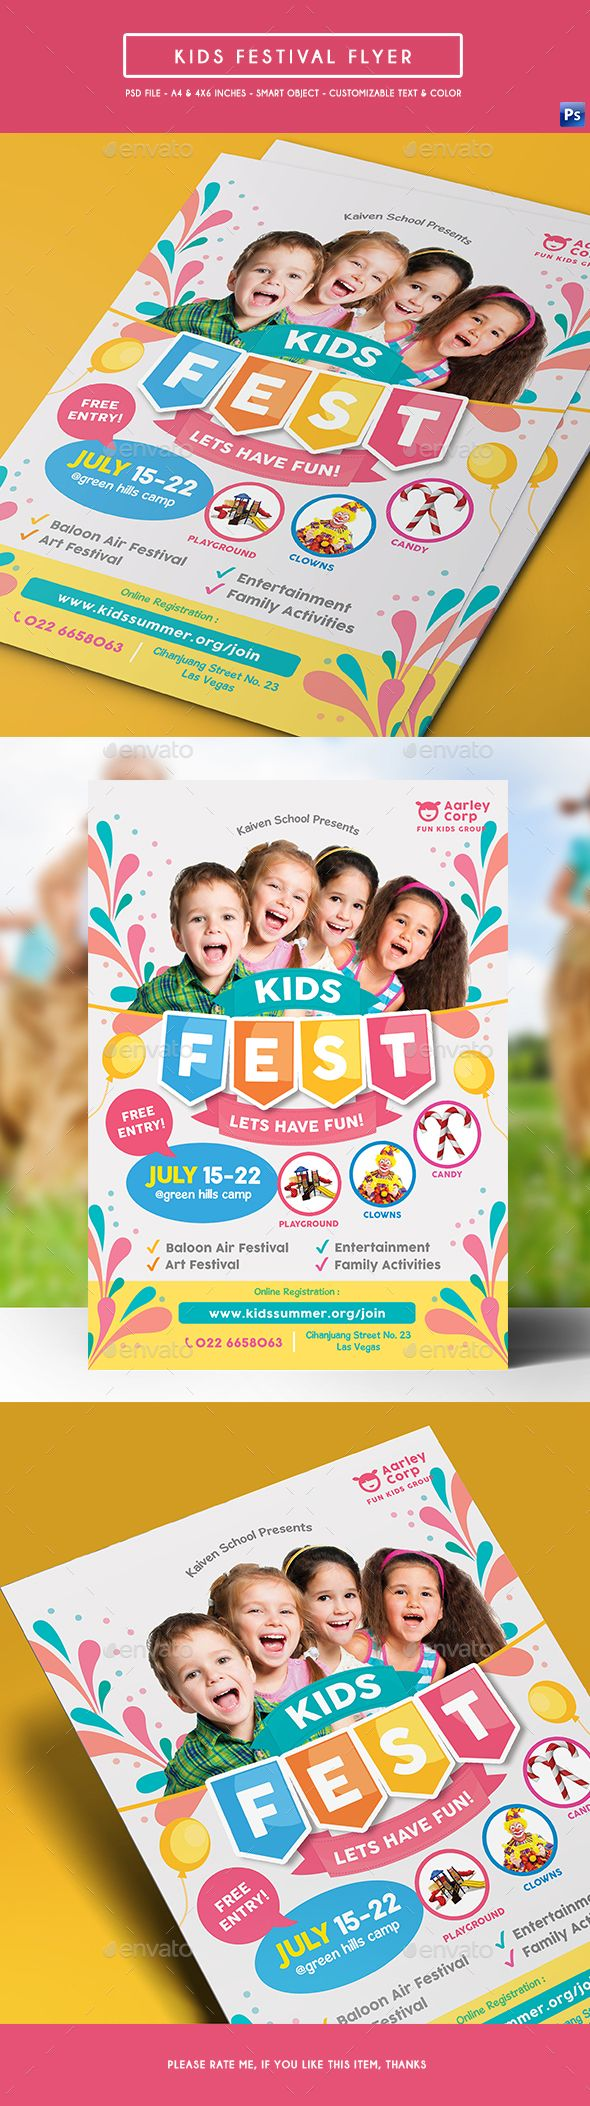 Kids Festival Flyer — Photoshop PSD #art #camp • Download ➝ https://graphicriver.net/item/kids-festival-flyer/19162784?ref=pxcr